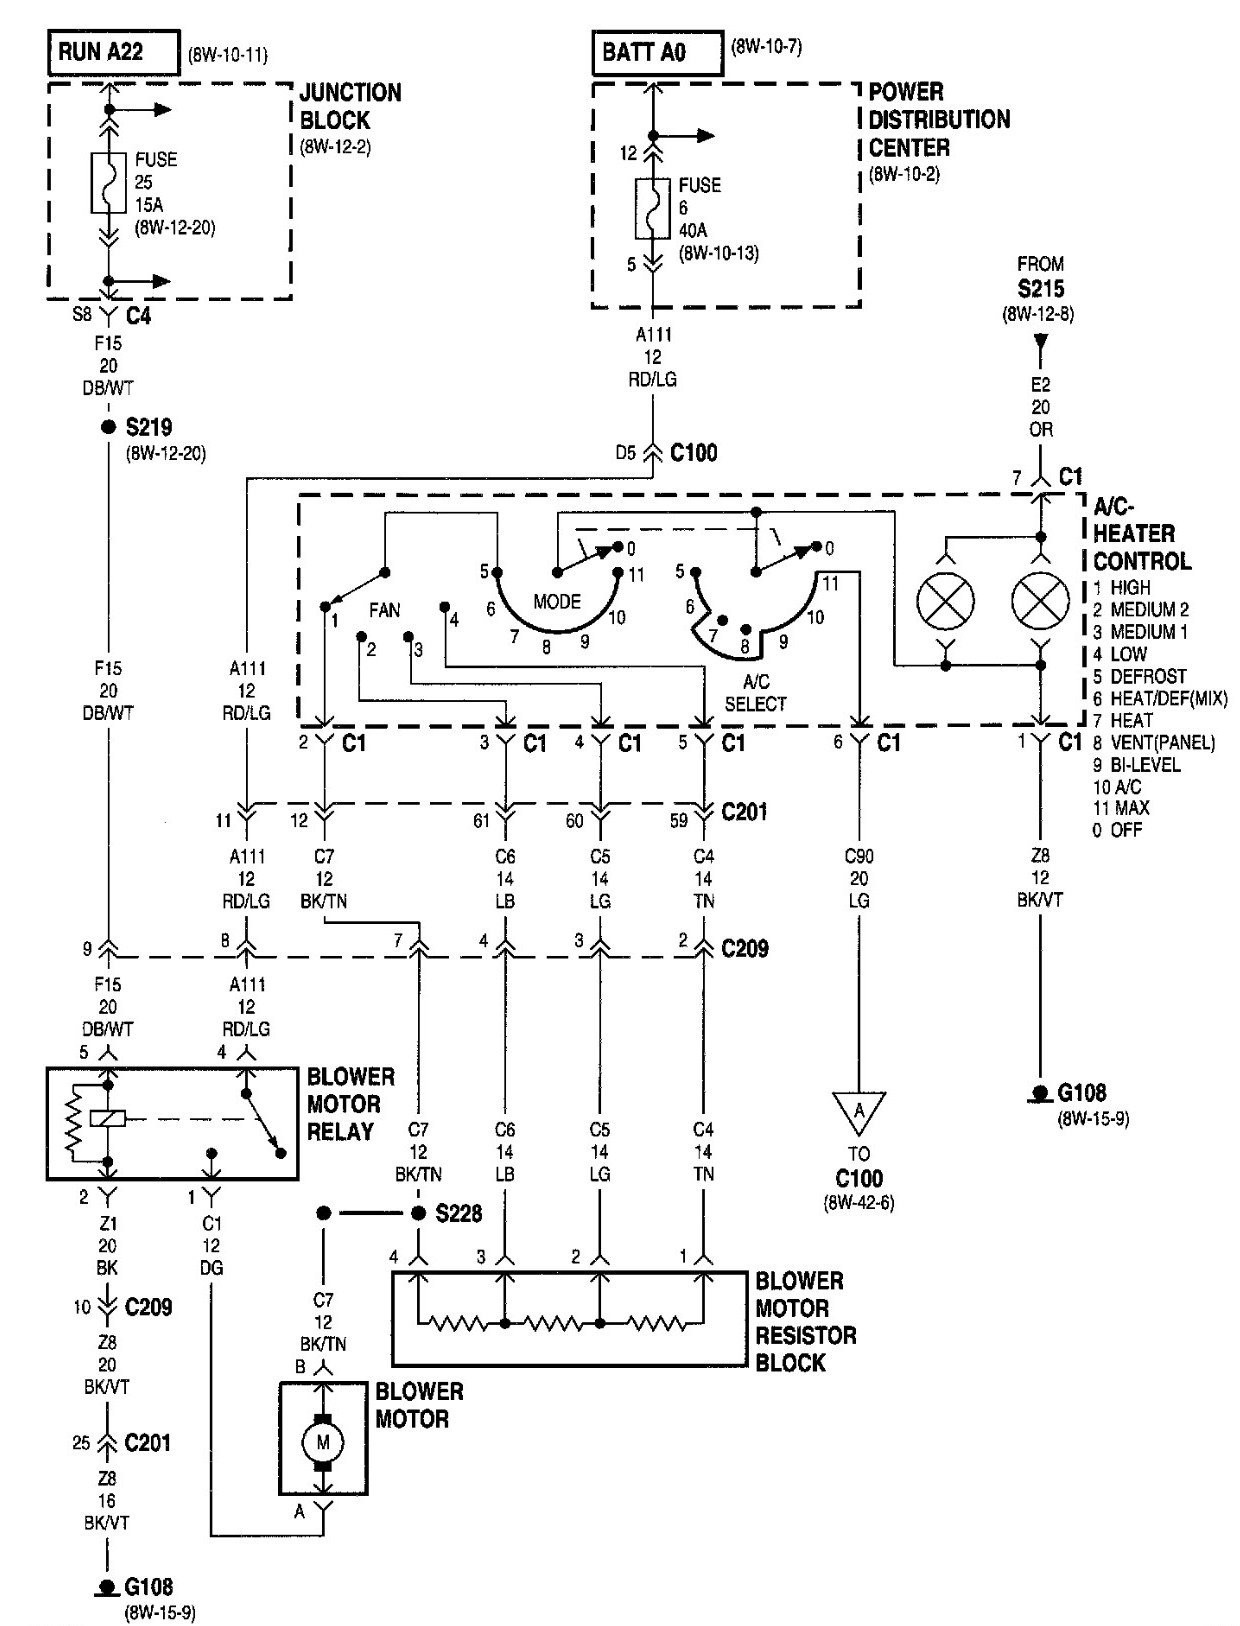 jeep grand cherokee engine diagram best wiring library rh 97 princestaash org